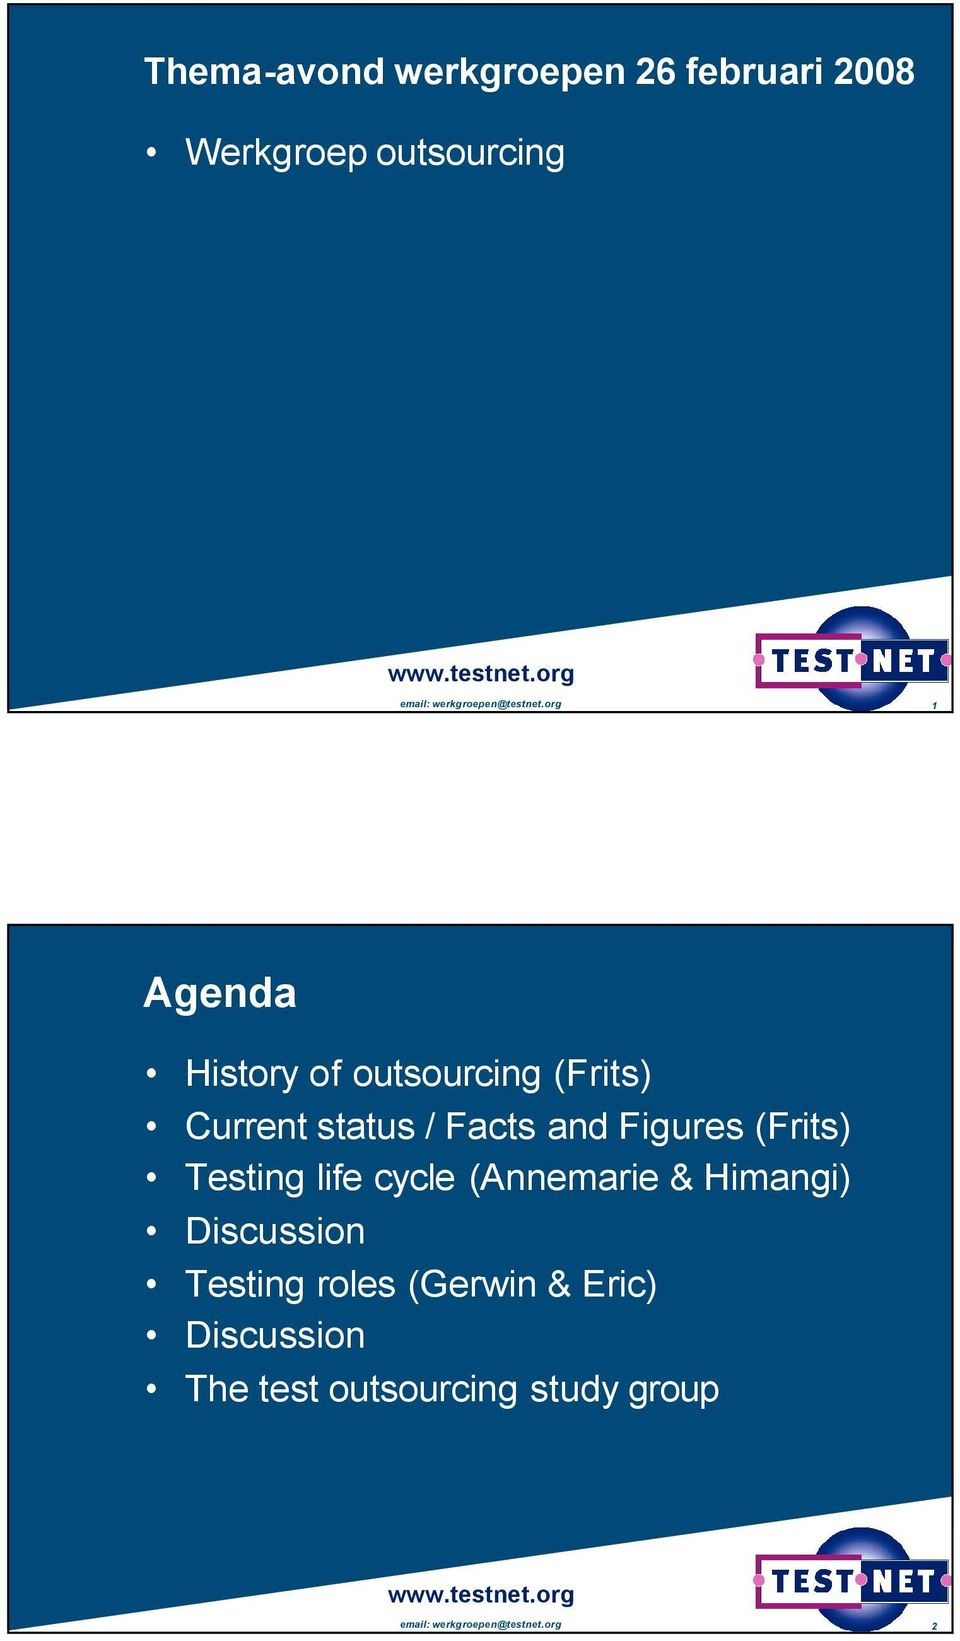 org 1 Agenda History of outsourcing (Frits) Current status / Facts and Figures